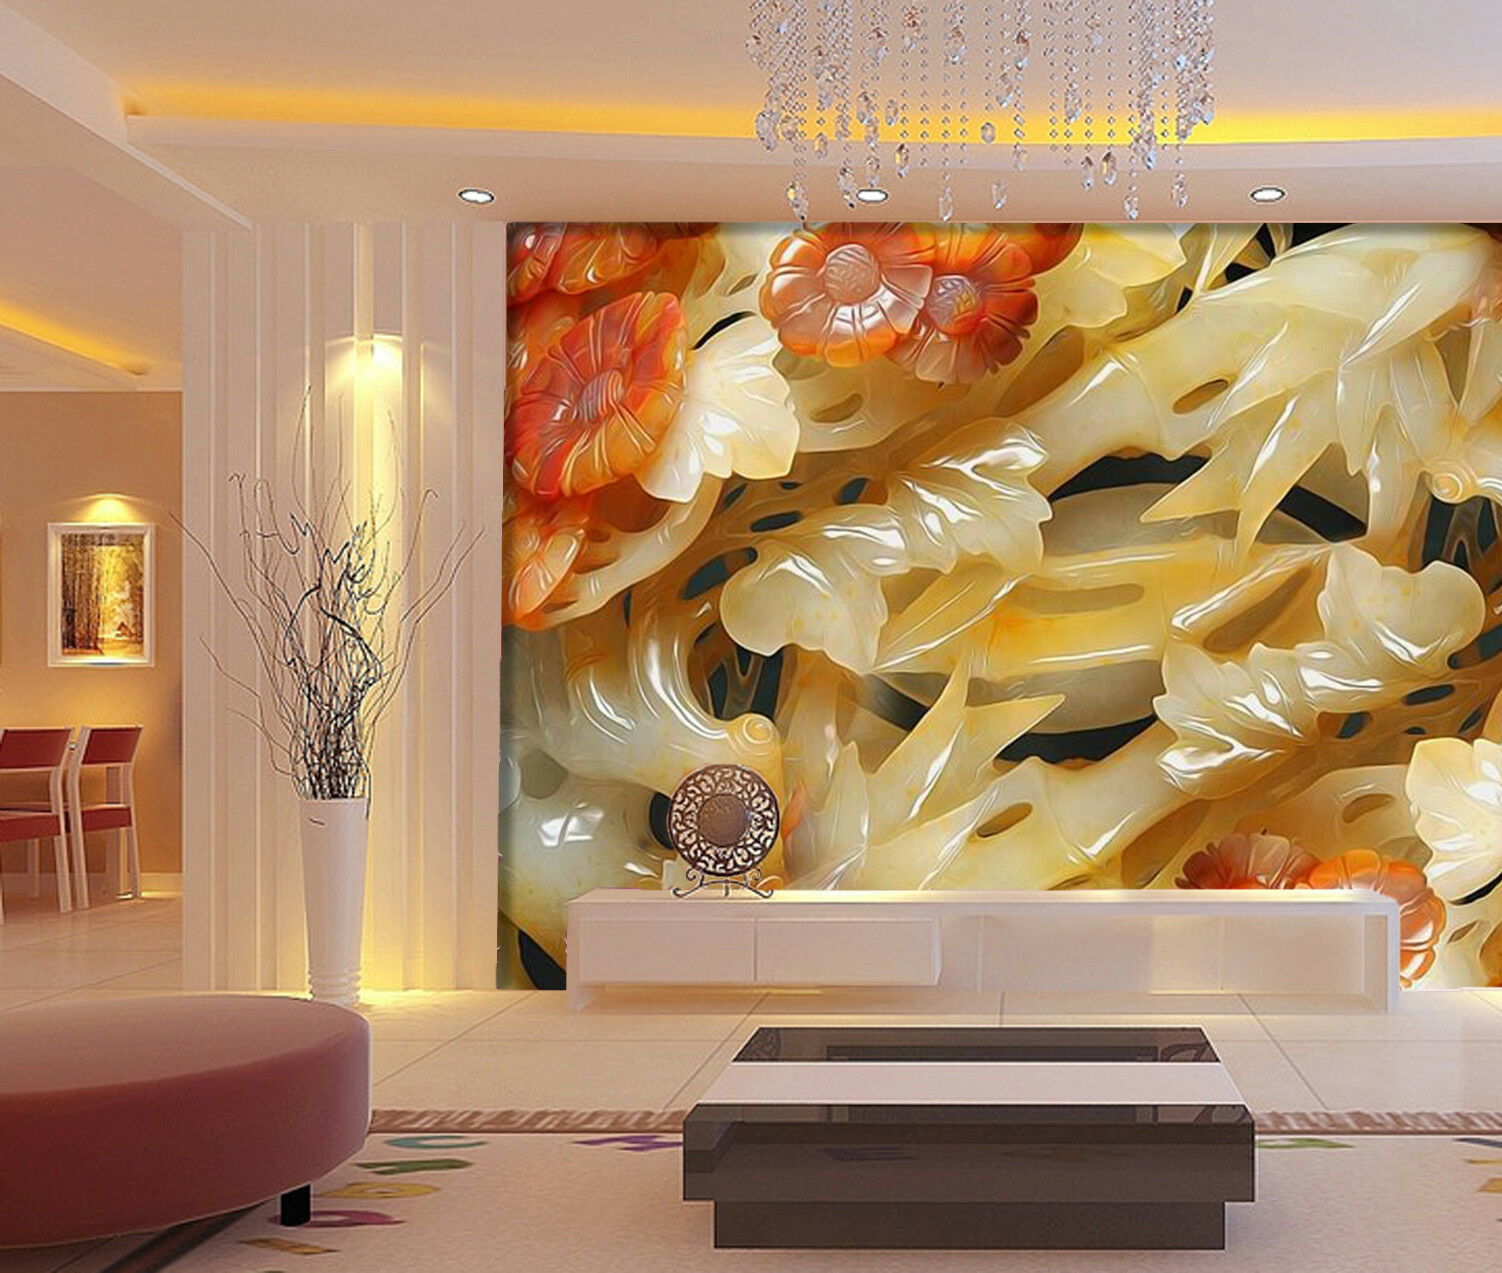 3D Jade Flower 80 Wallpaper Mural Wall Print Wall Wallpaper Murals US Lemon